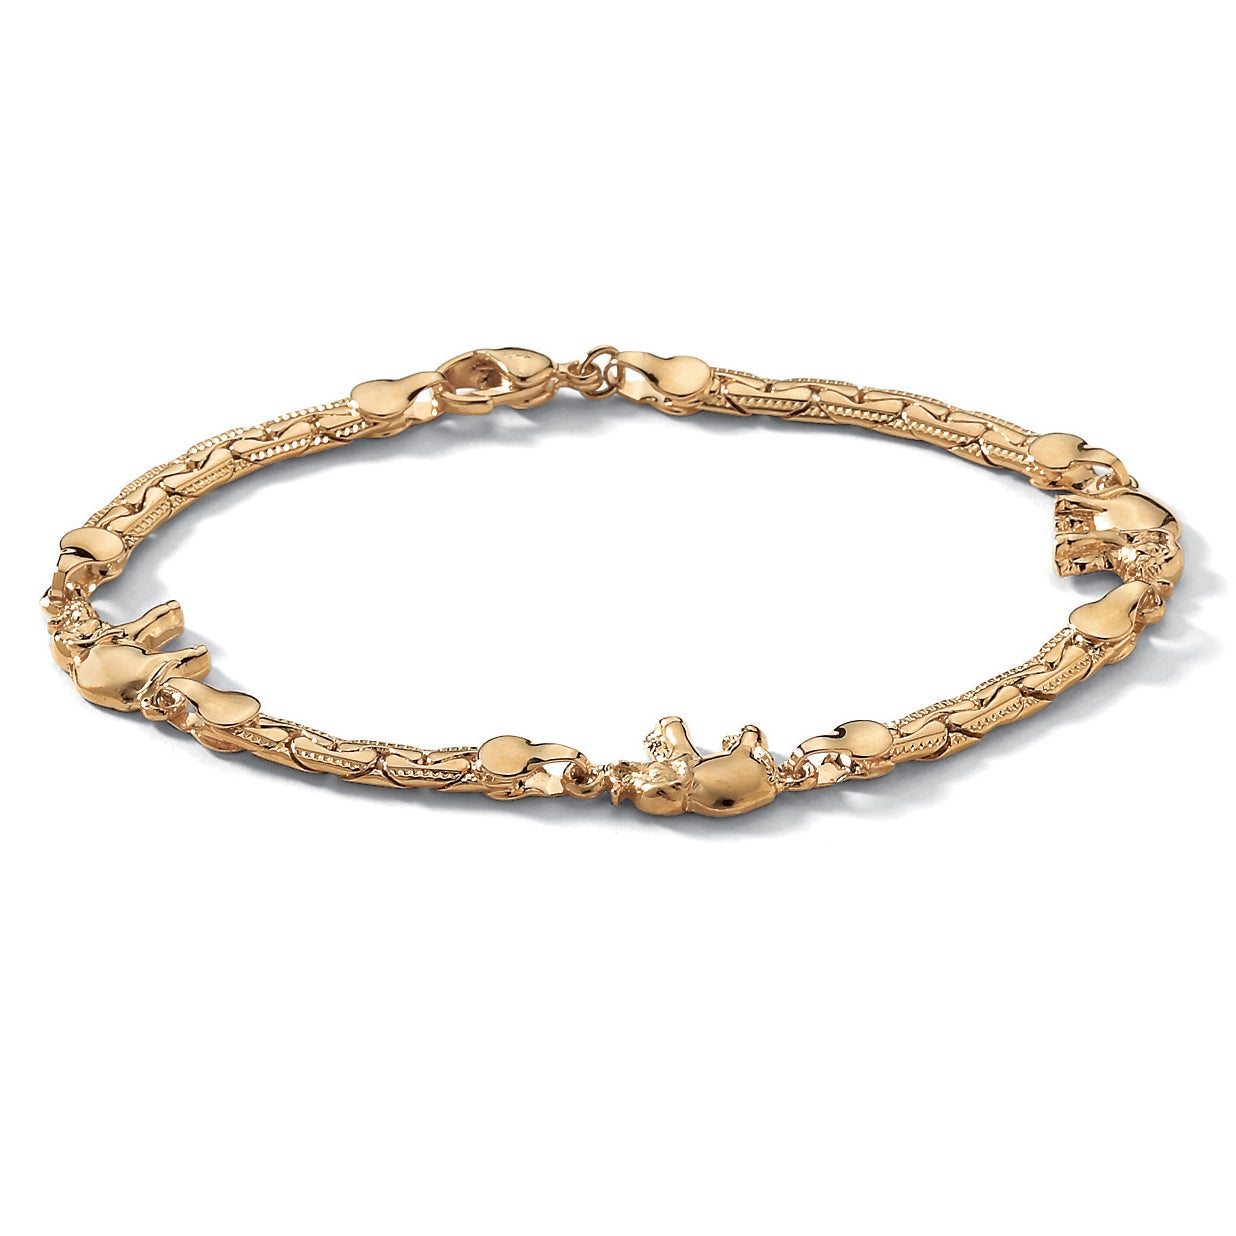 Palm Beach Elephant Ankle Bracelet in Yellow Gold Tone 10...